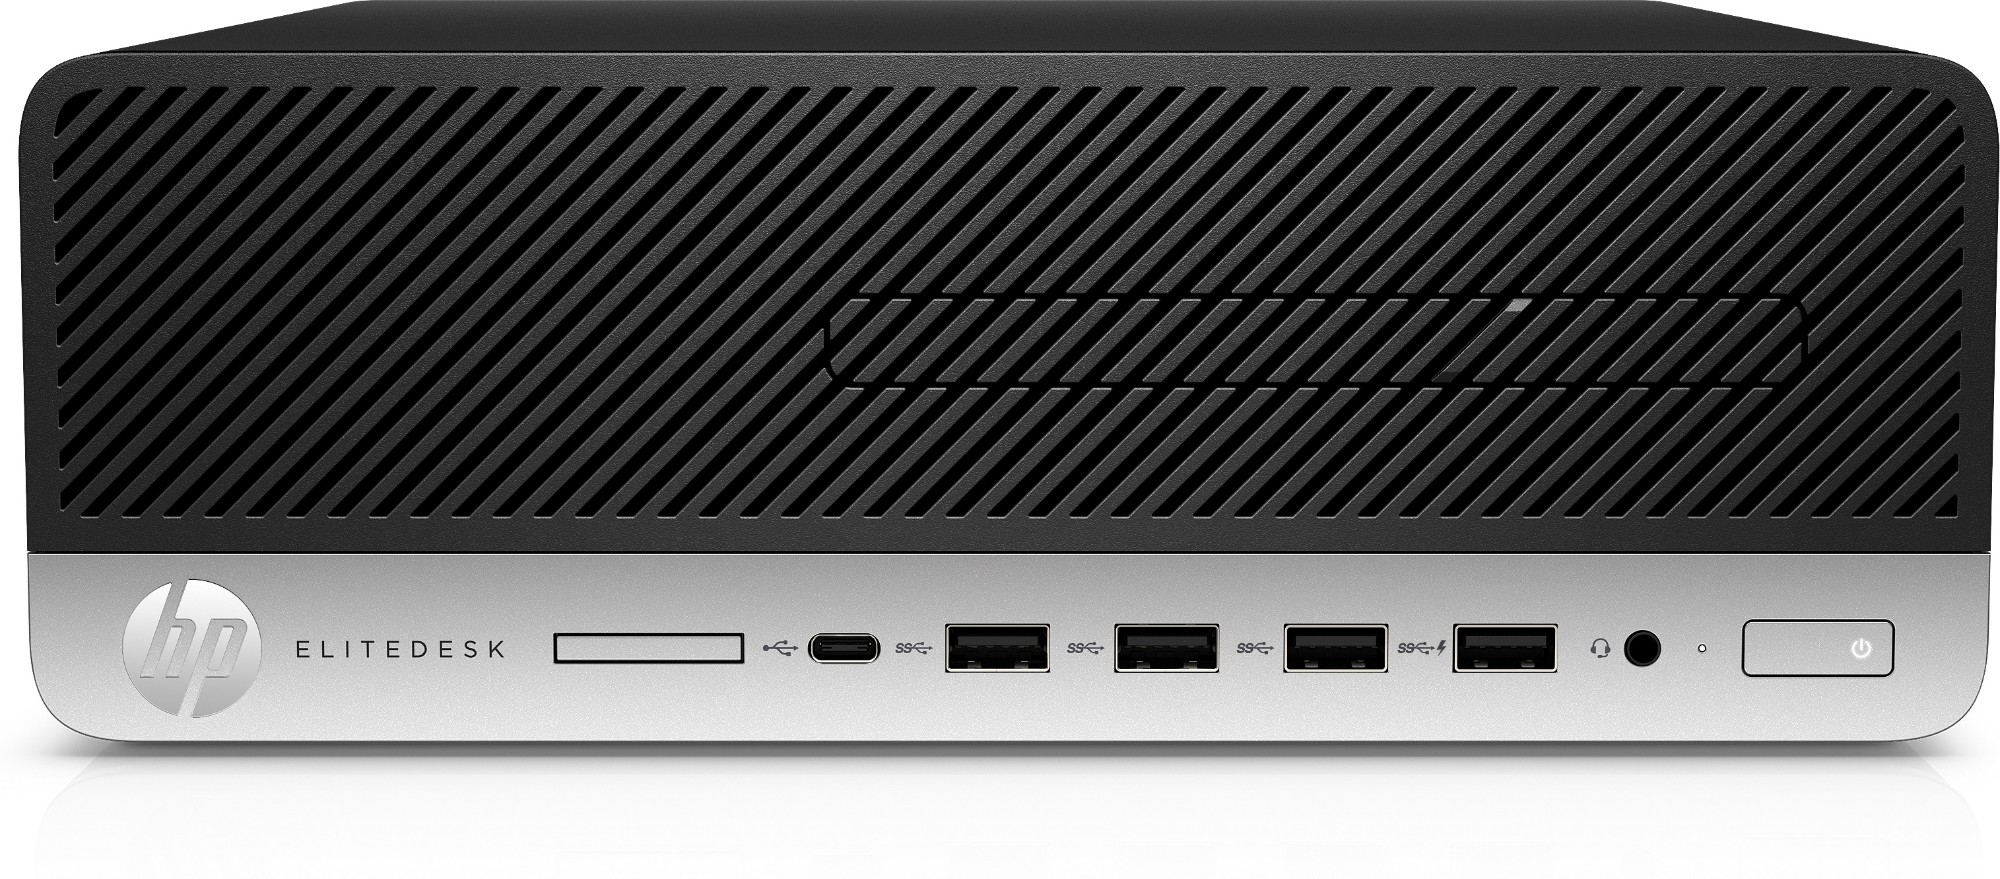 HP EliteDesk Ordinateur à faible encombrement 705 G5 AMD Ryzen 5 PRO 3400G 8 GB DDR4-SDRAM 256 GB SSD SFF Negro, Plata PC Windows 10 Pro